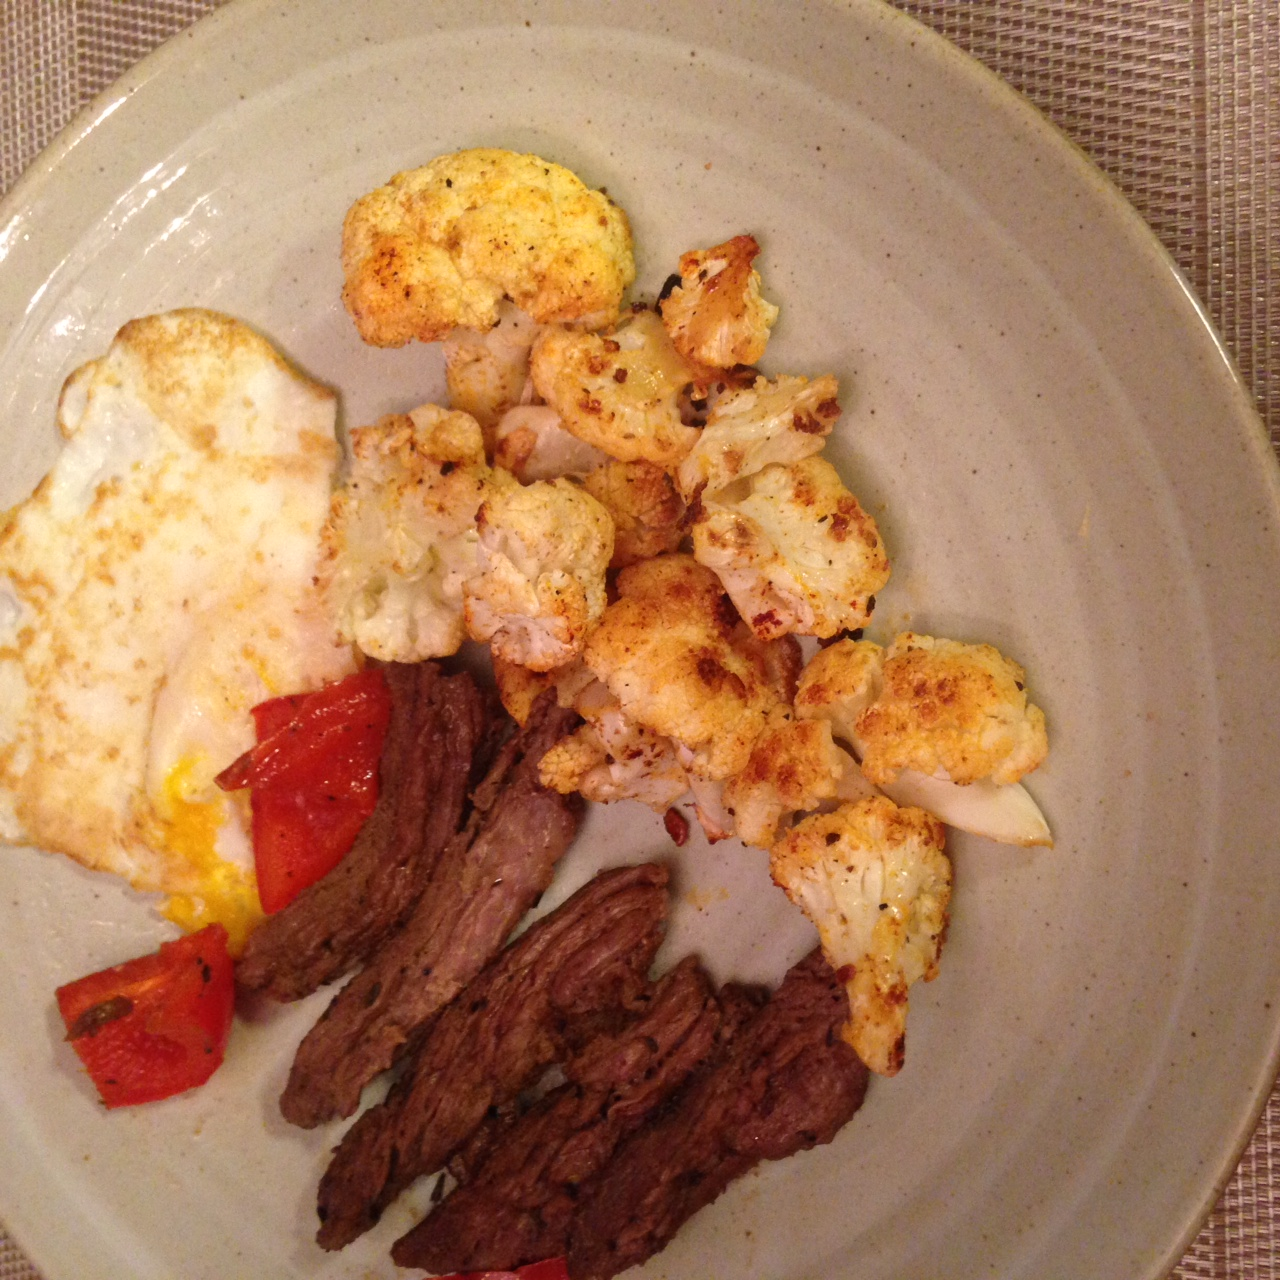 Dinner at home: skirt steak, eggs, grilled red peppers, roasted cauliflower